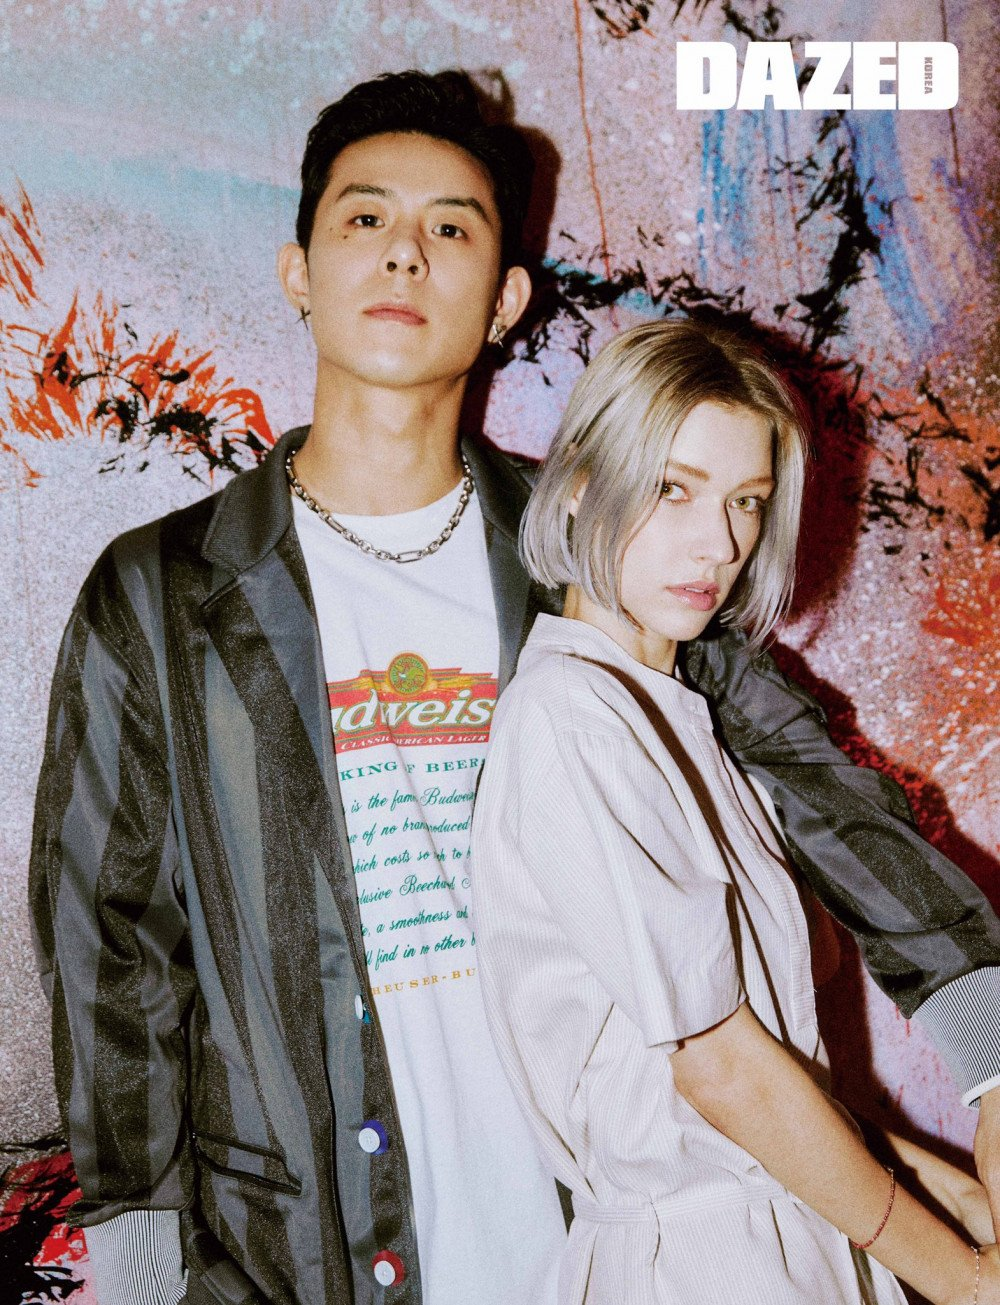 Beenzino and Stefanie Michova share romantic moments in the New Year's Eve